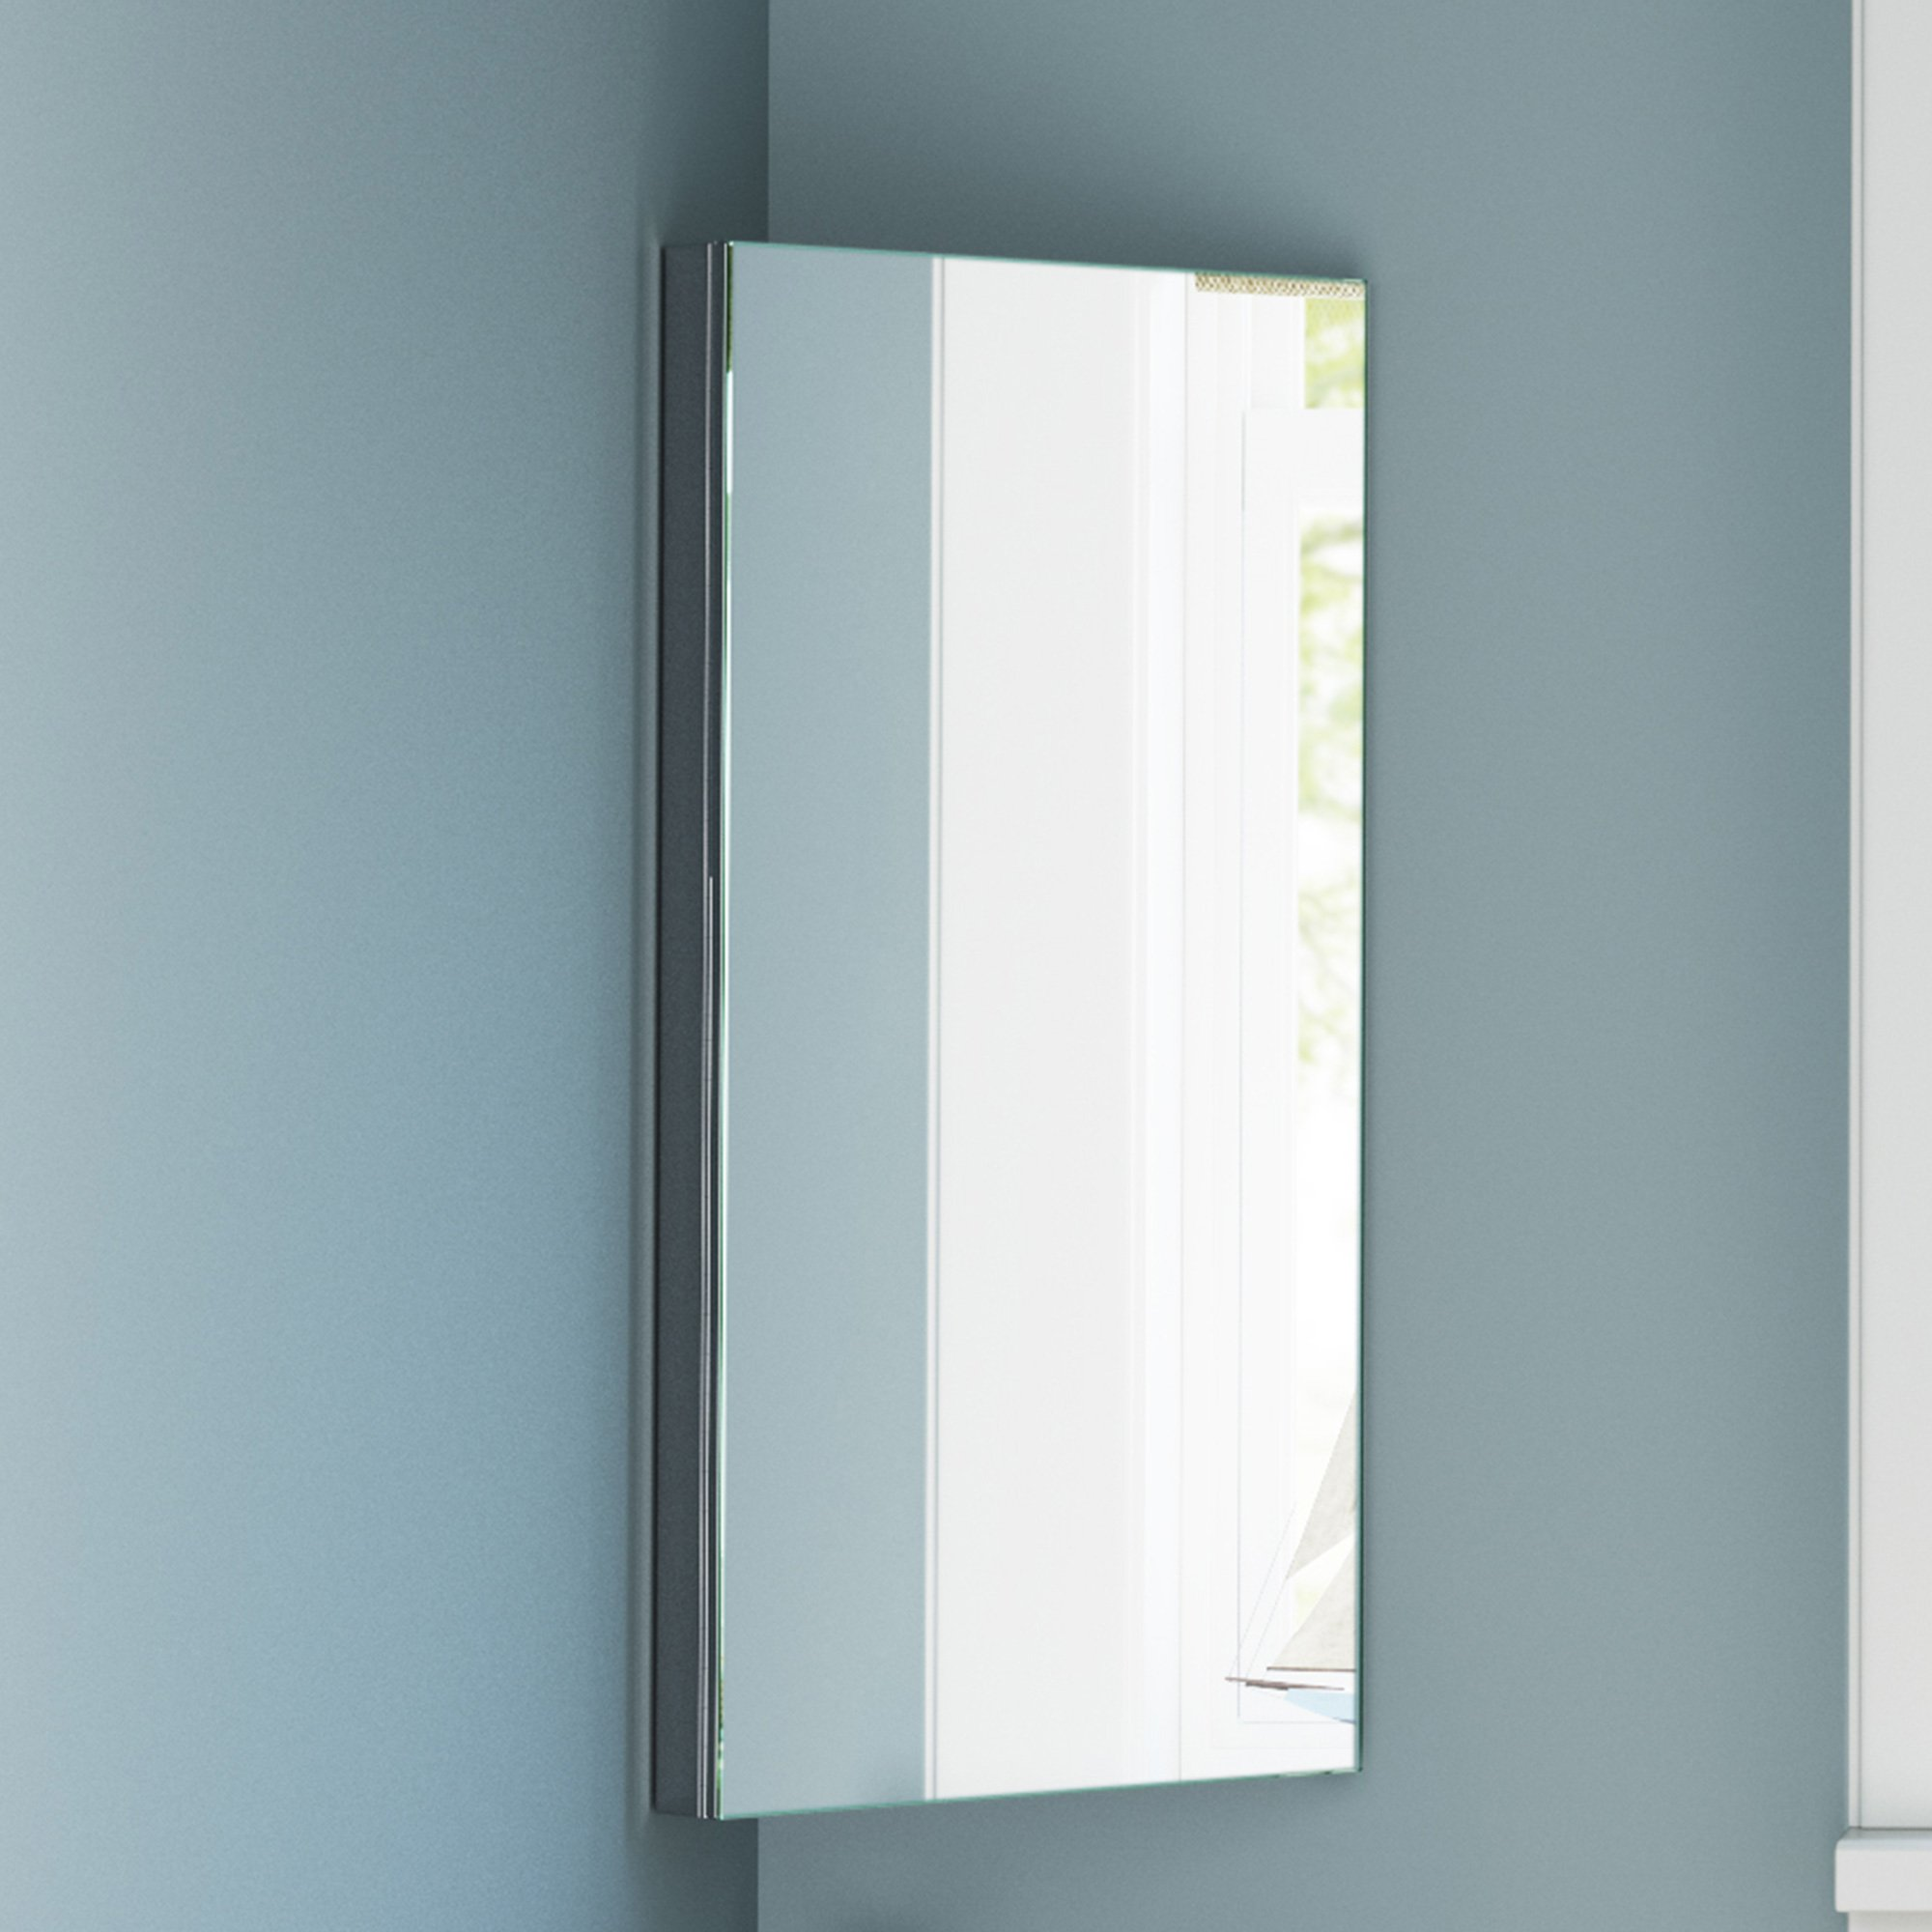 300mm Tall Stainless Steel Corner Bathroom Mirror Cabinet Modern Storage Unit Buy Online In Guernsey At Guernsey Desertcart Com Productid 49261737